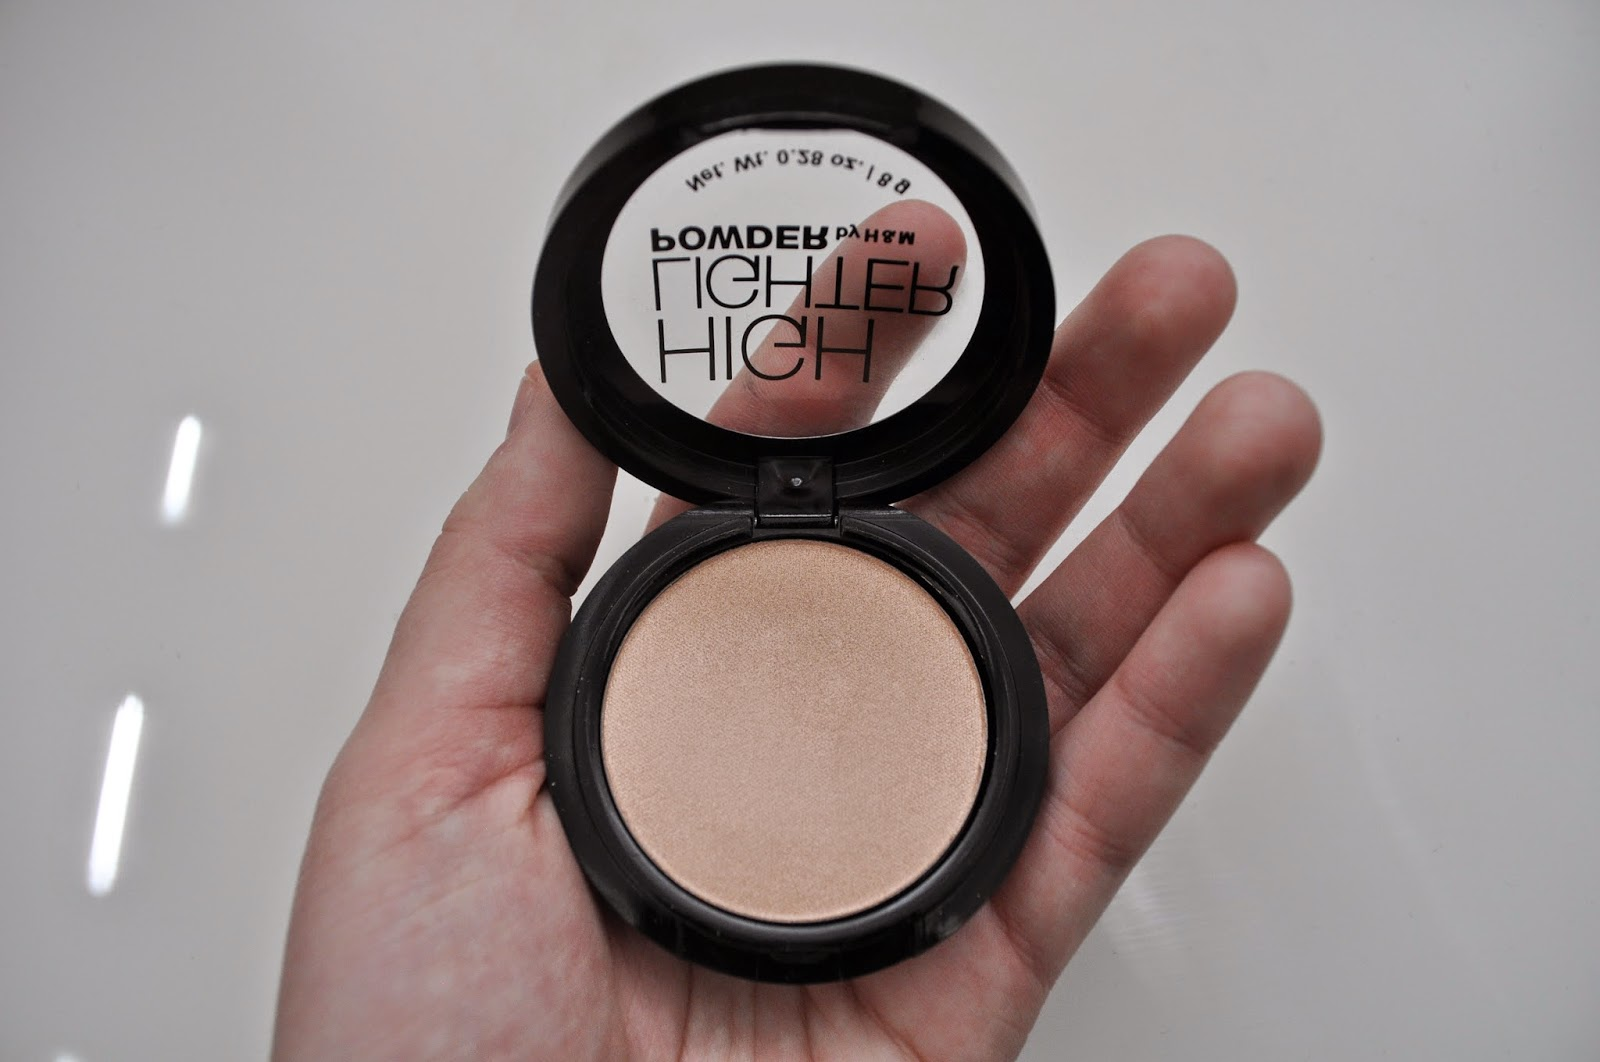 Highlighter powder by H&M